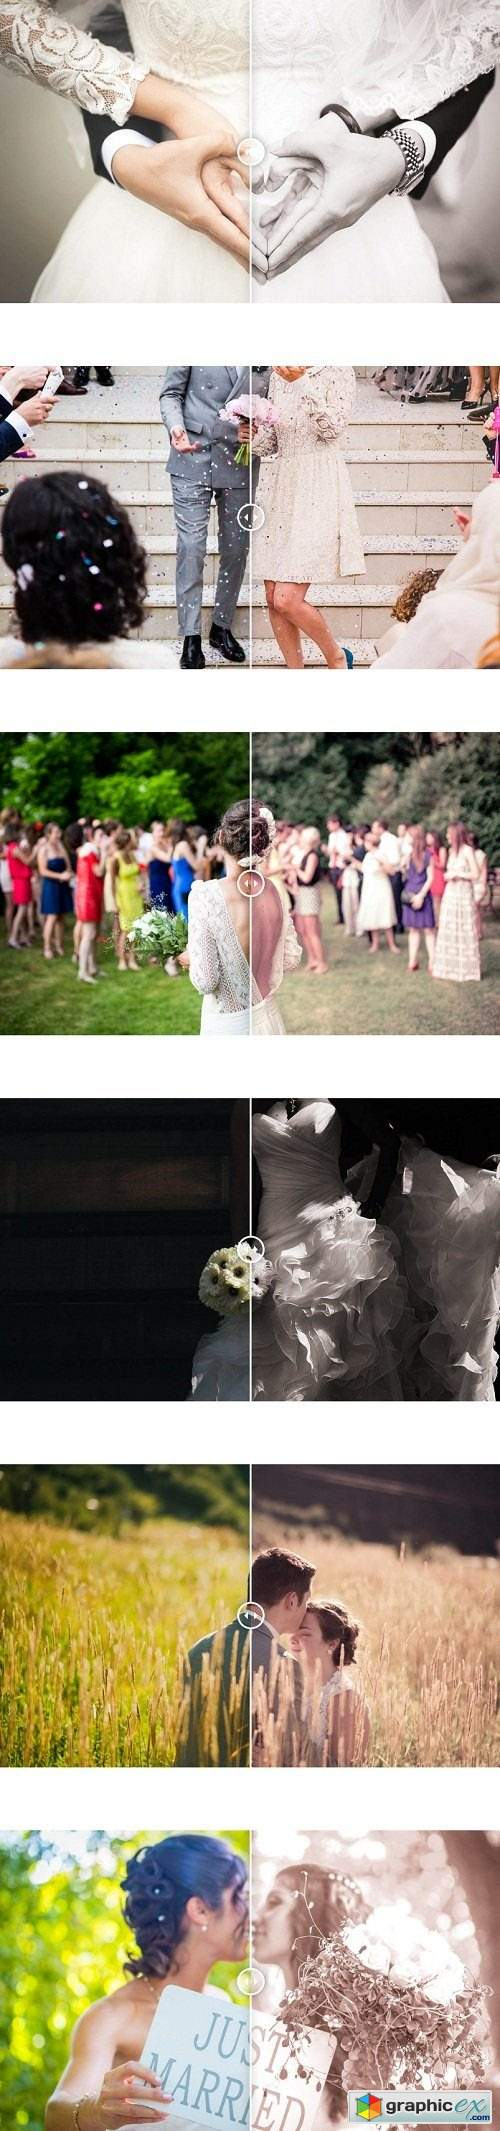 Photonify - Wedding Collection Lightroom Presets